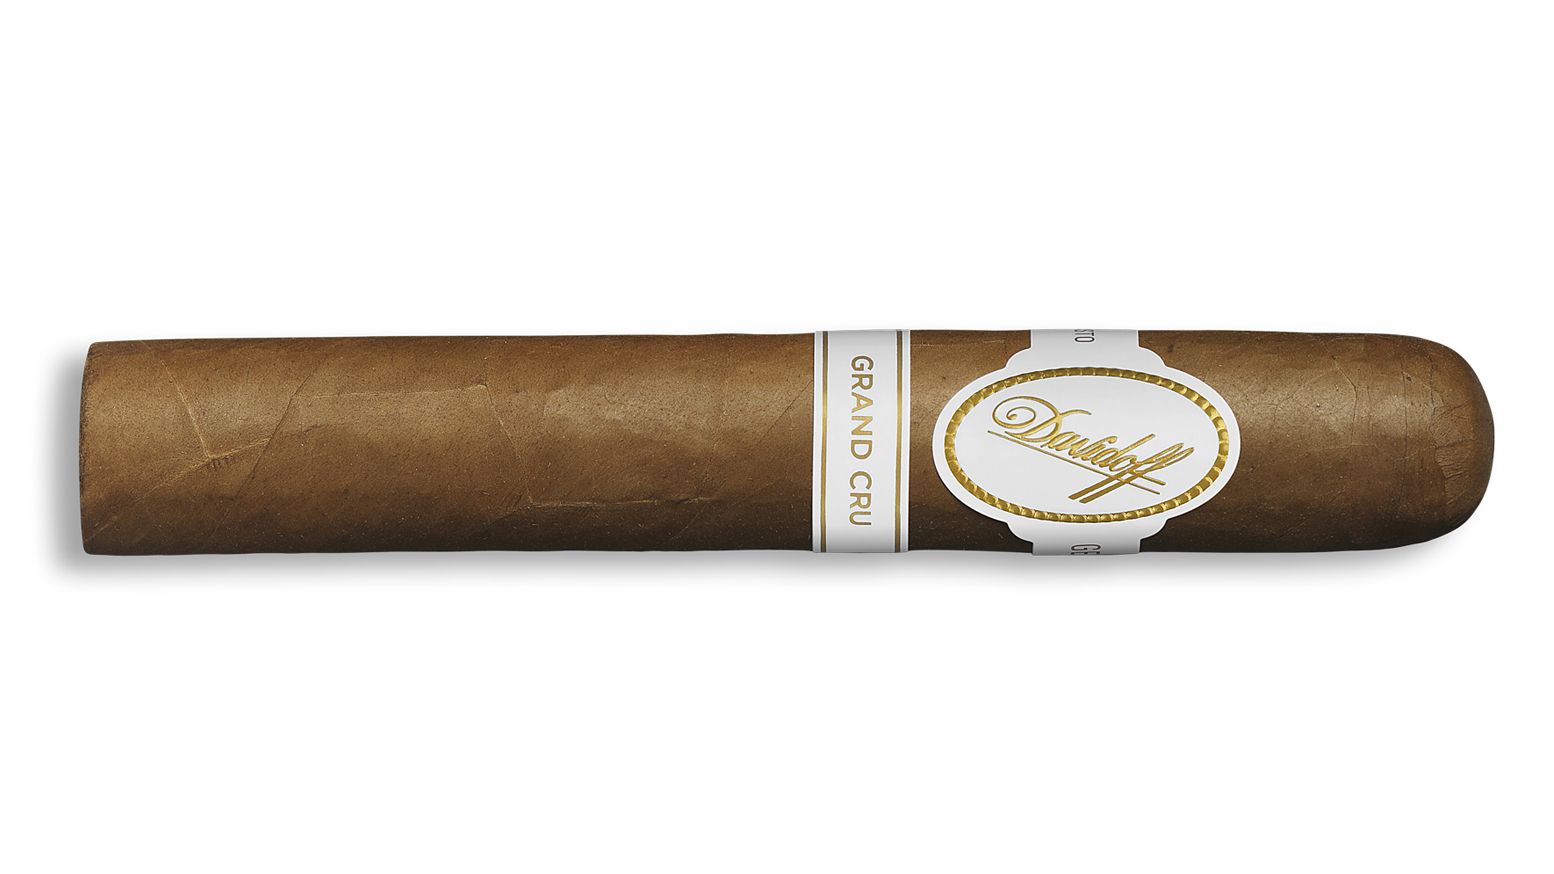 Davidoff Grand Cru - Cigar Dave